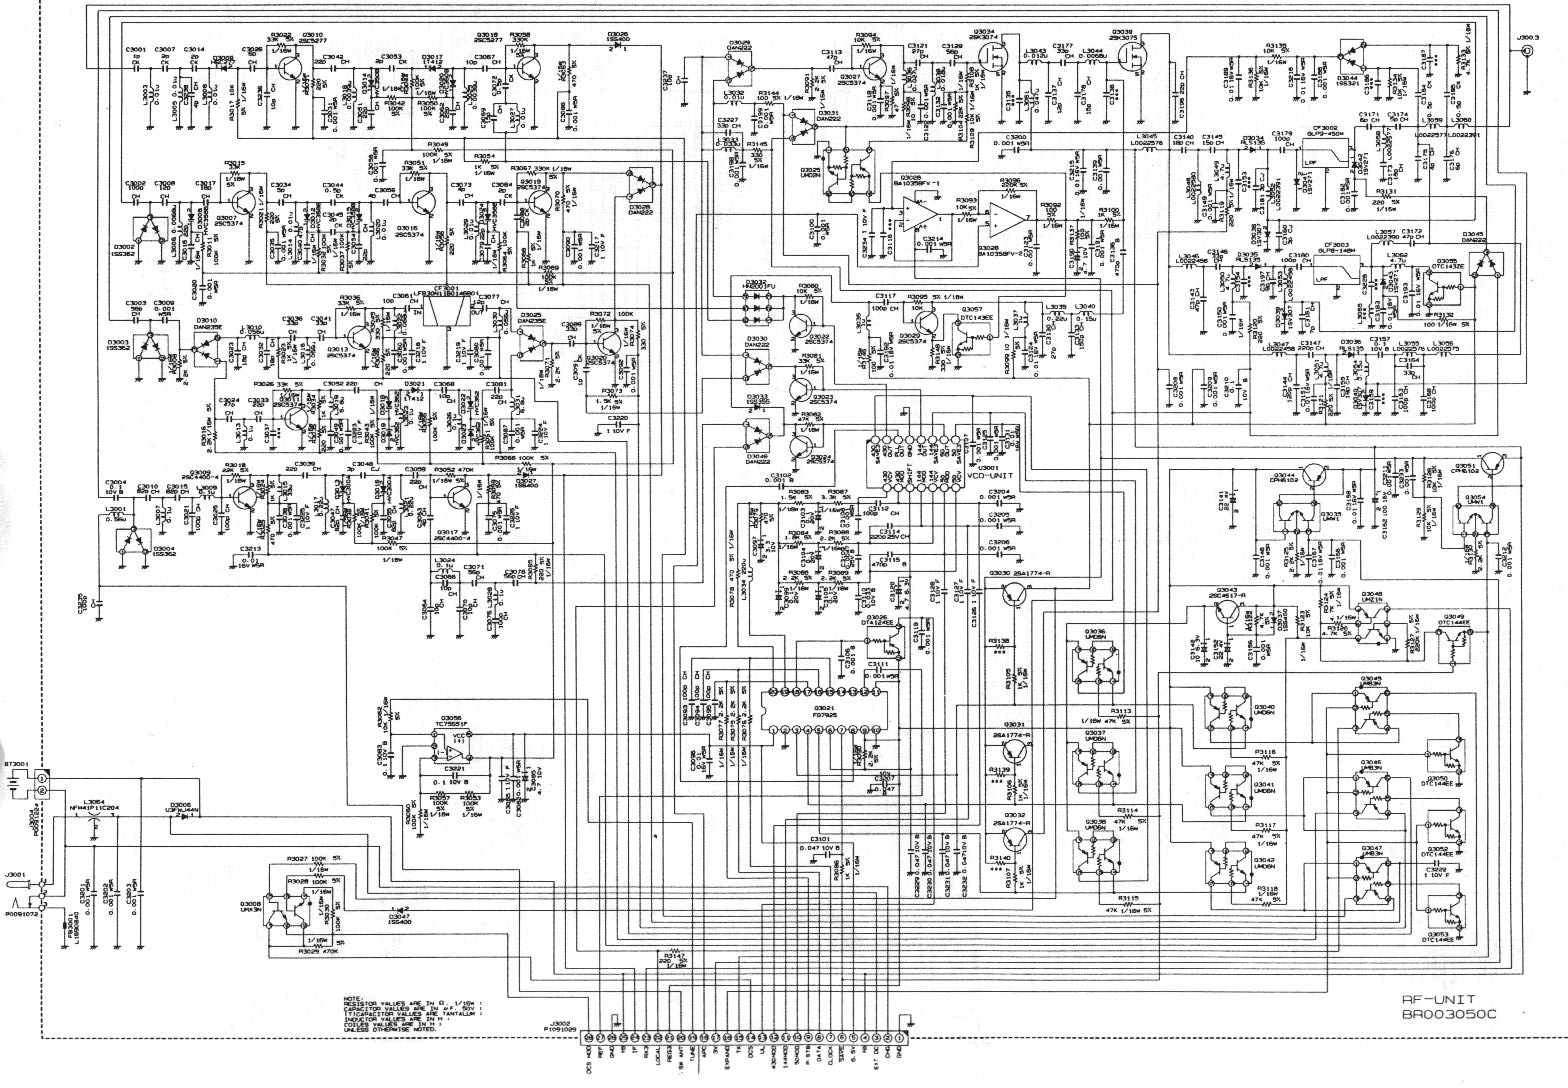 YAESU VX 5 Schematic c index of pub radio_manuals yaesu Yaesu G-450A at readyjetset.co